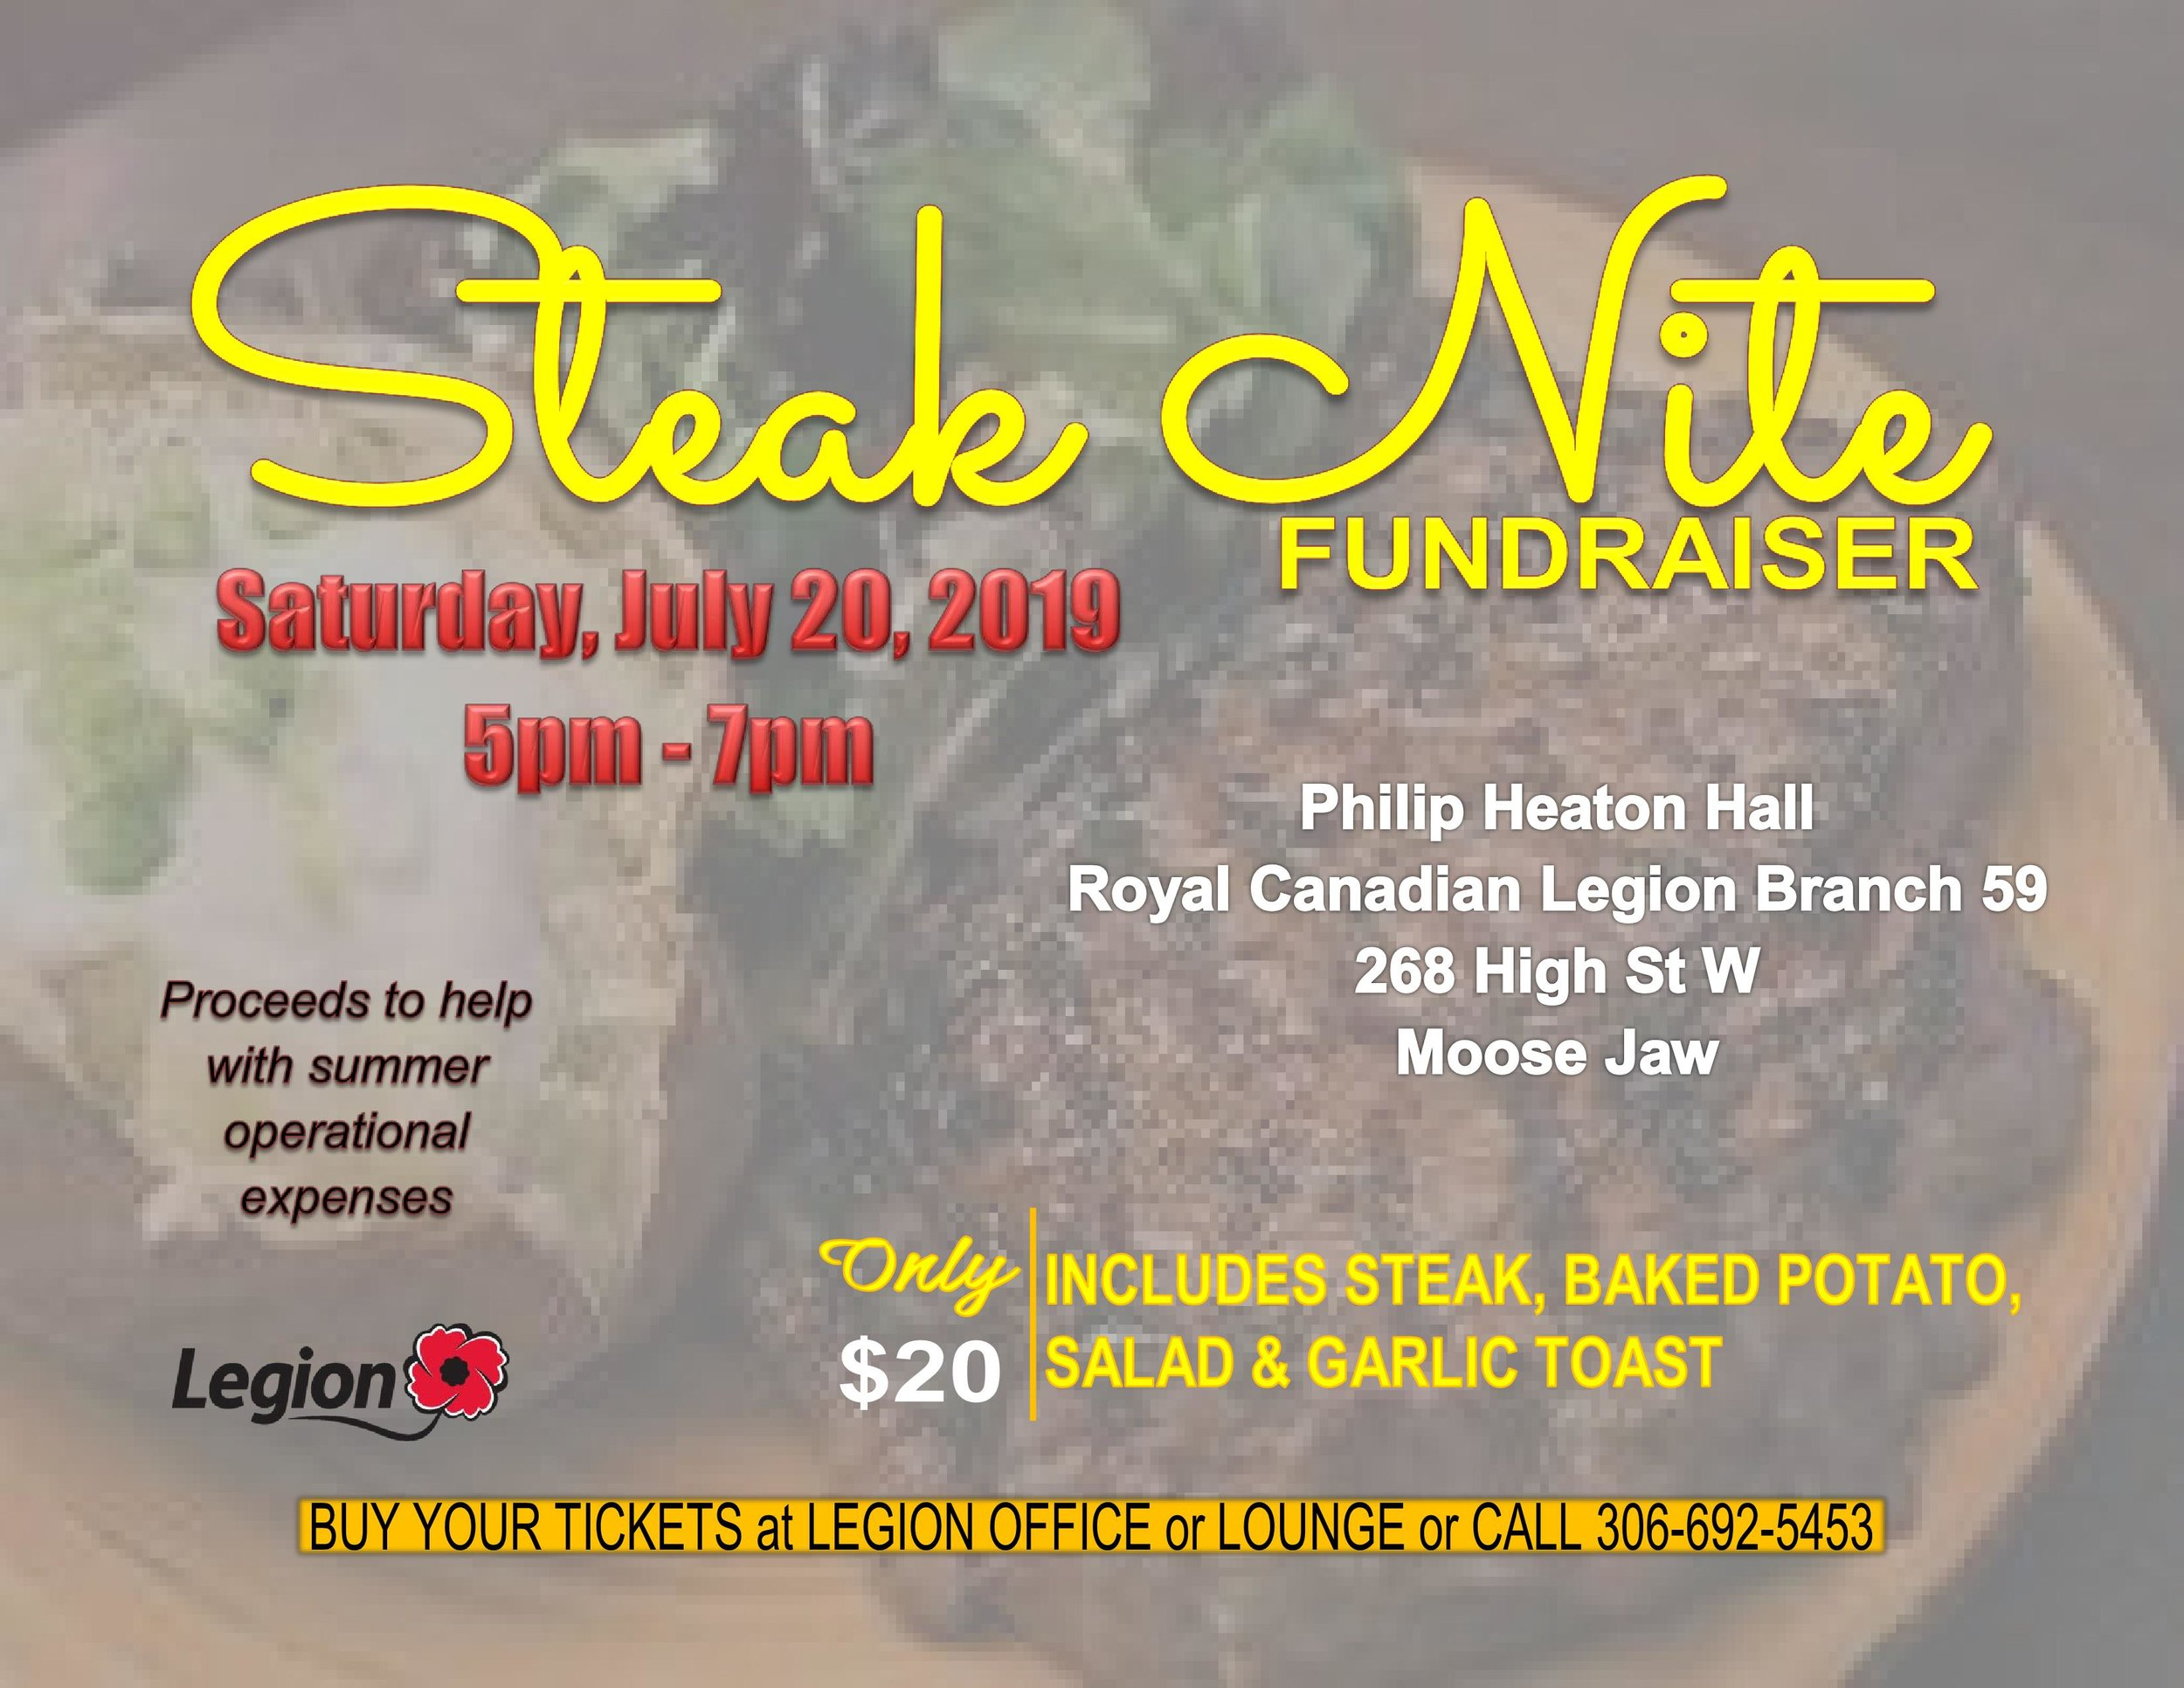 Steak Nite Fundraiser - Saturday, July 20, 2019, 5pm - 7pm  Philip Heaton Hall, Royal Canadian Legion, Branch 59, 268 High St W, Moose Jaw  Steak, Baked Potato, Salad, Garlic Toast  $20/ticket  Tickets available at the Legion Office or Lounge    Proceeds to help with summer operational expenses